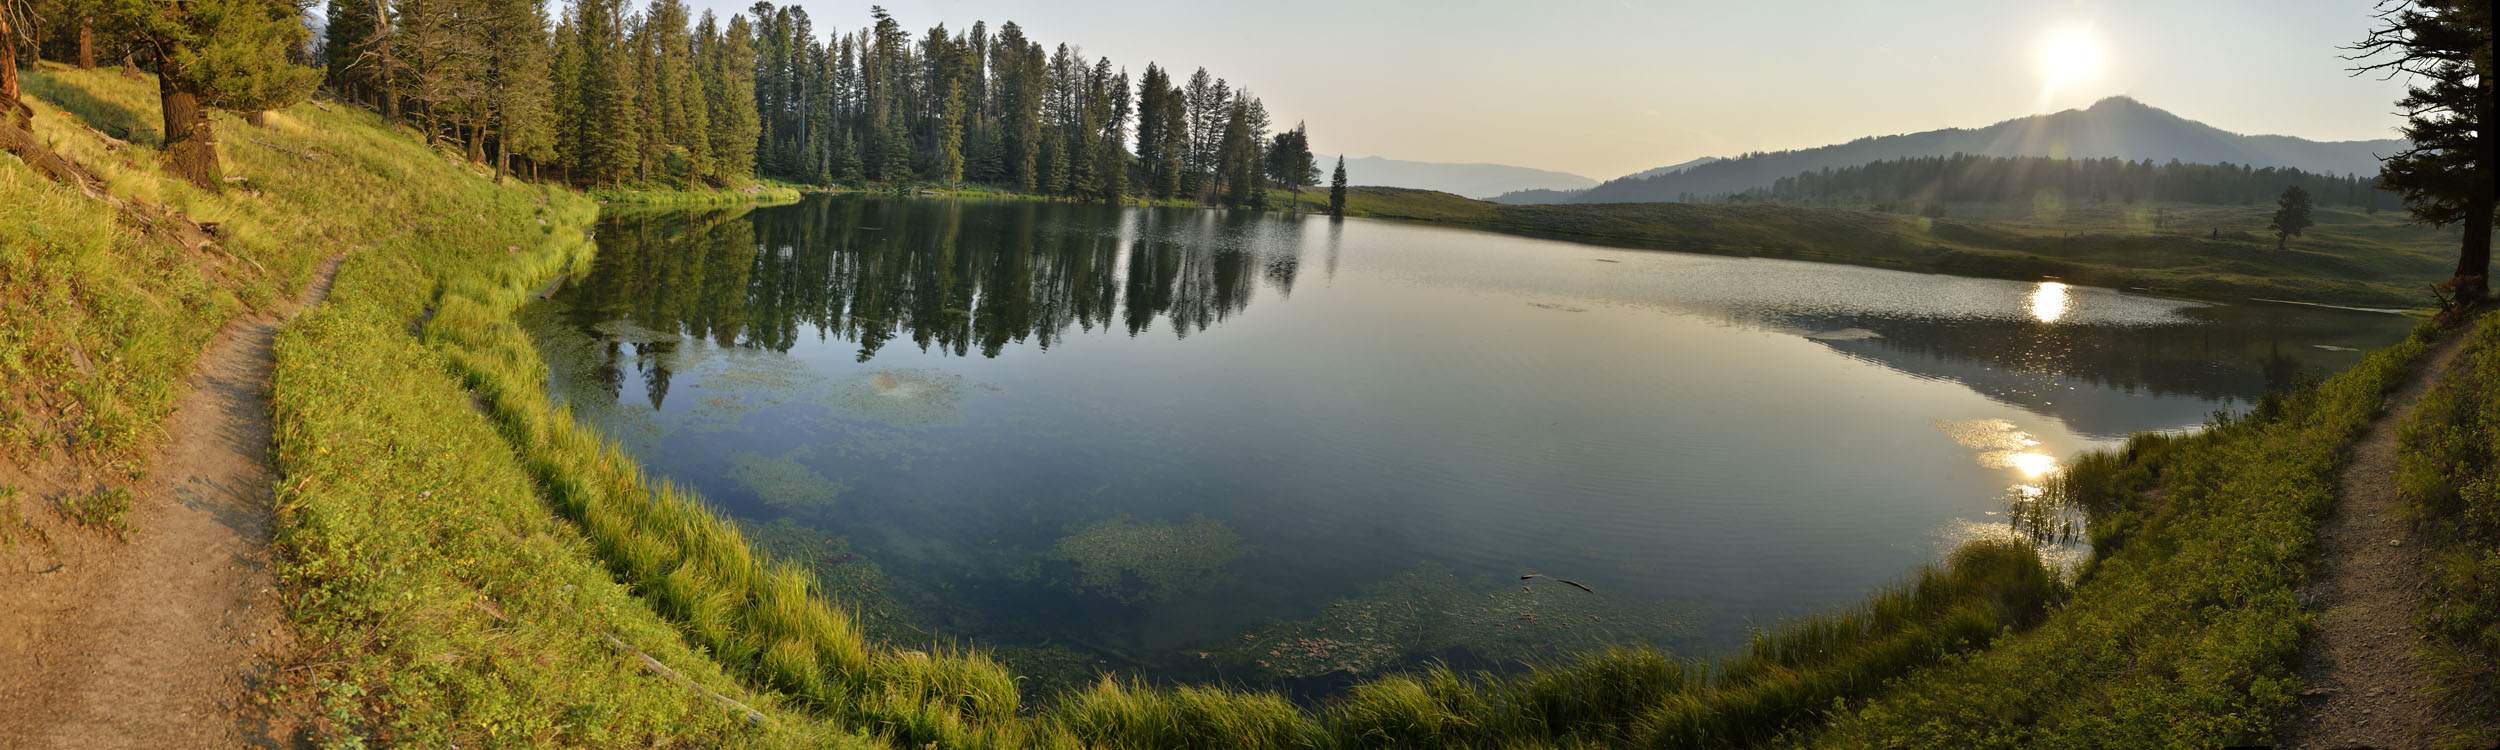 Trout Lake, Yellowstone NP